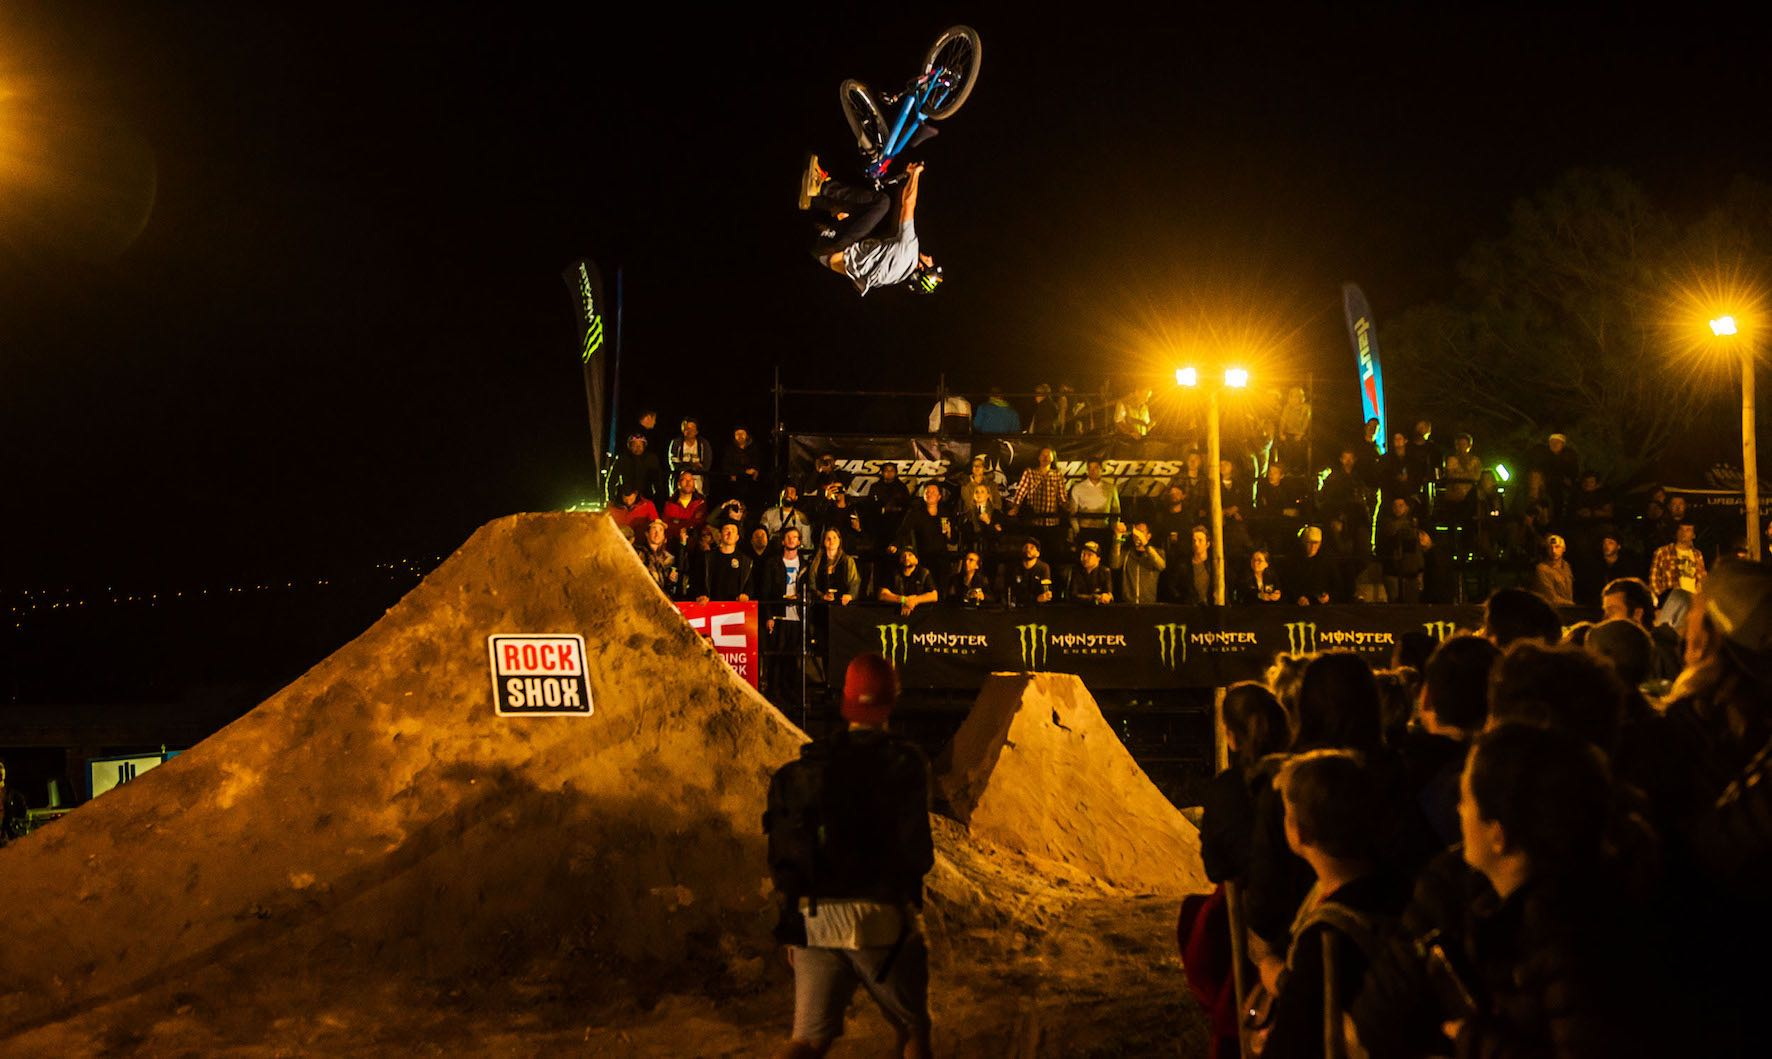 Sam Reynolds winning the Night Harvest 2018 MTB event